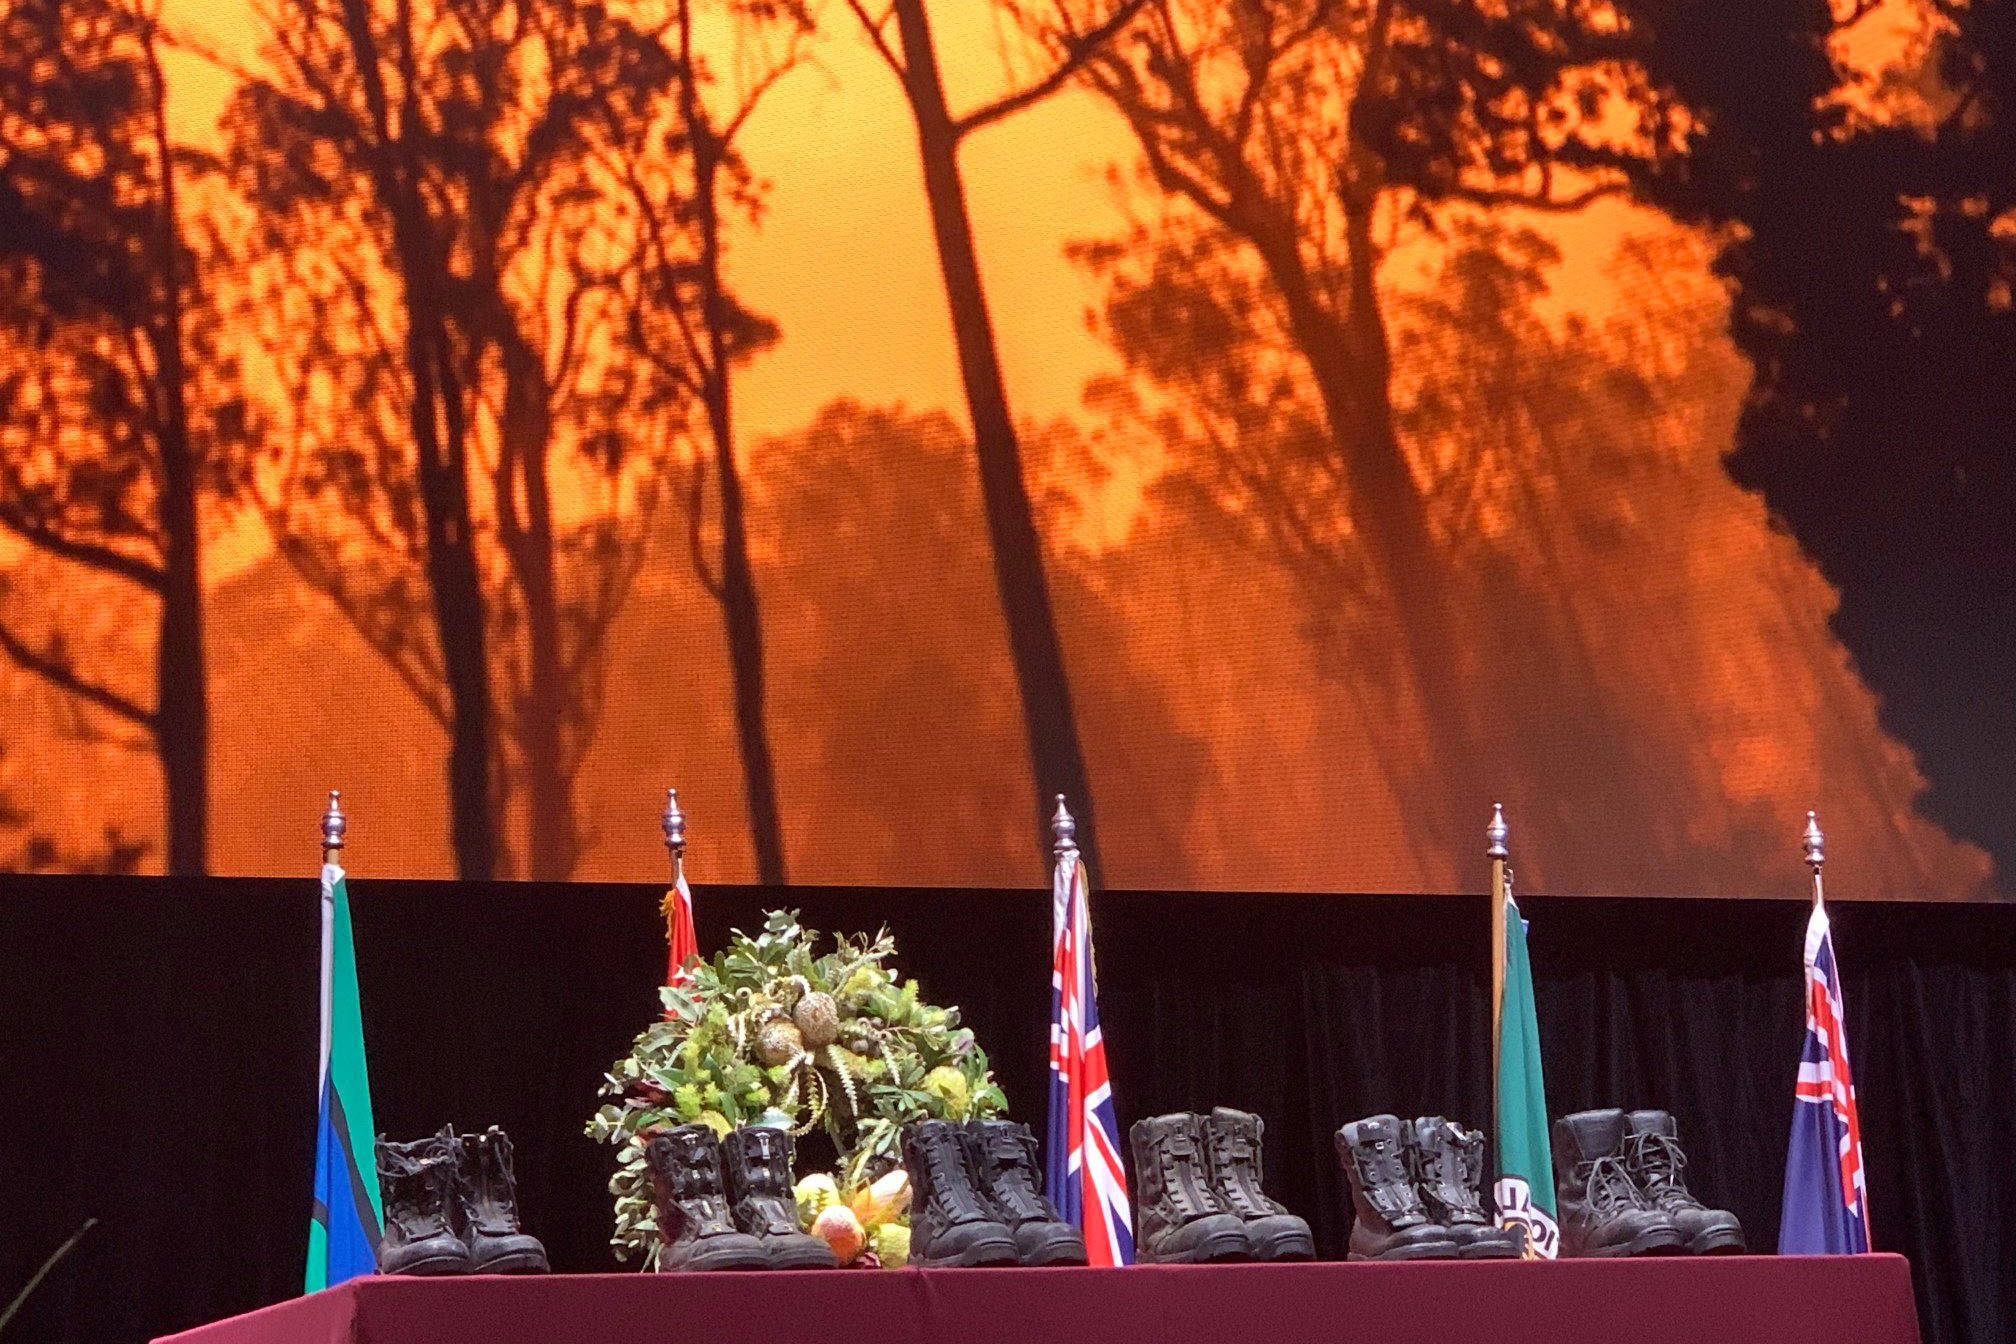 Flight boots of aviators killed in Australian firefighting efforts were part of a memorial service last week in New South Wales. (Coulson Aviation/Facebook)